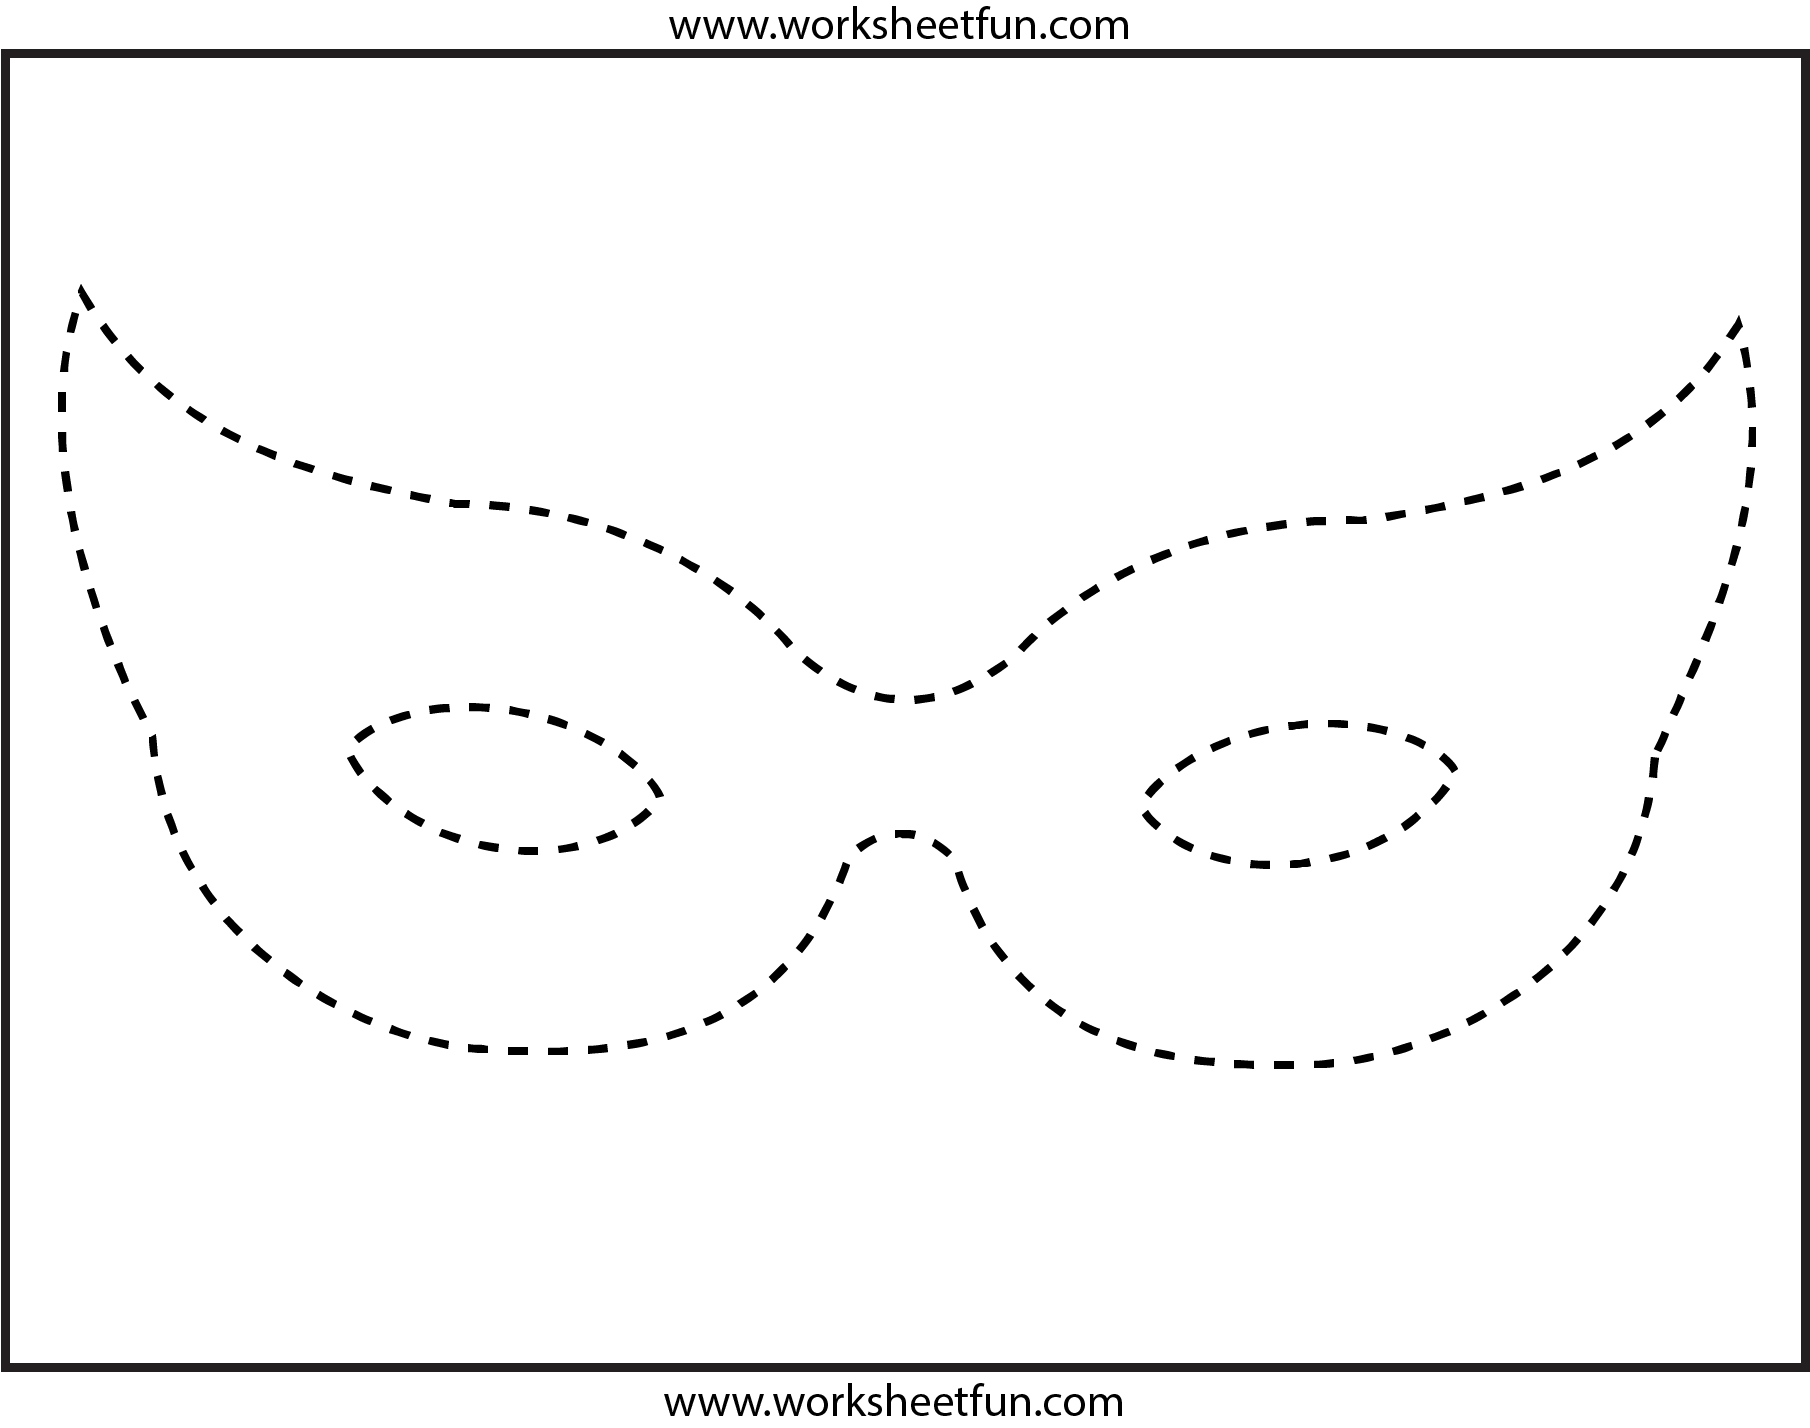 Picture Tracing - Mask